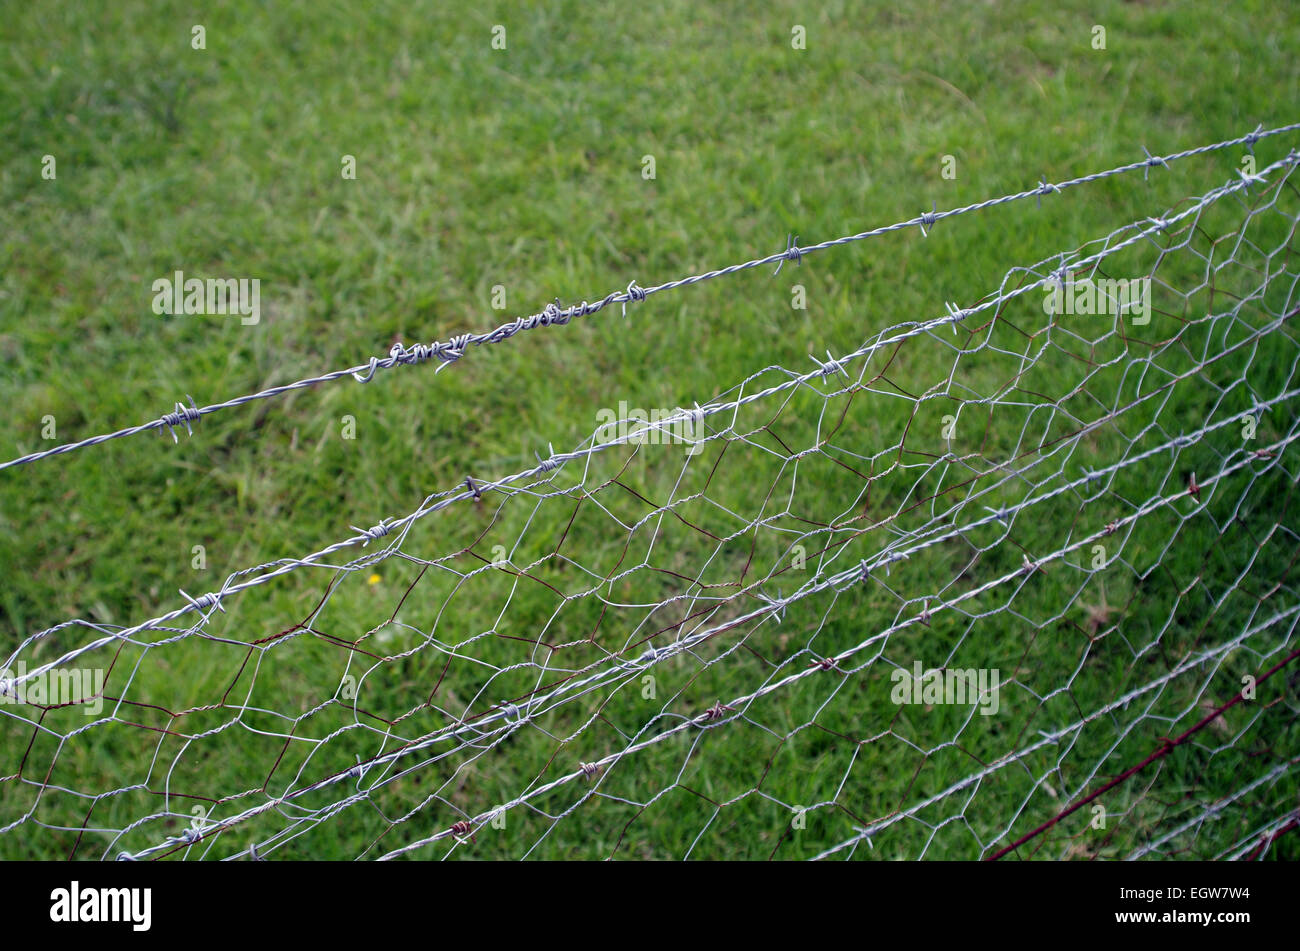 Barbed Wire fence, side angle - Stock Image